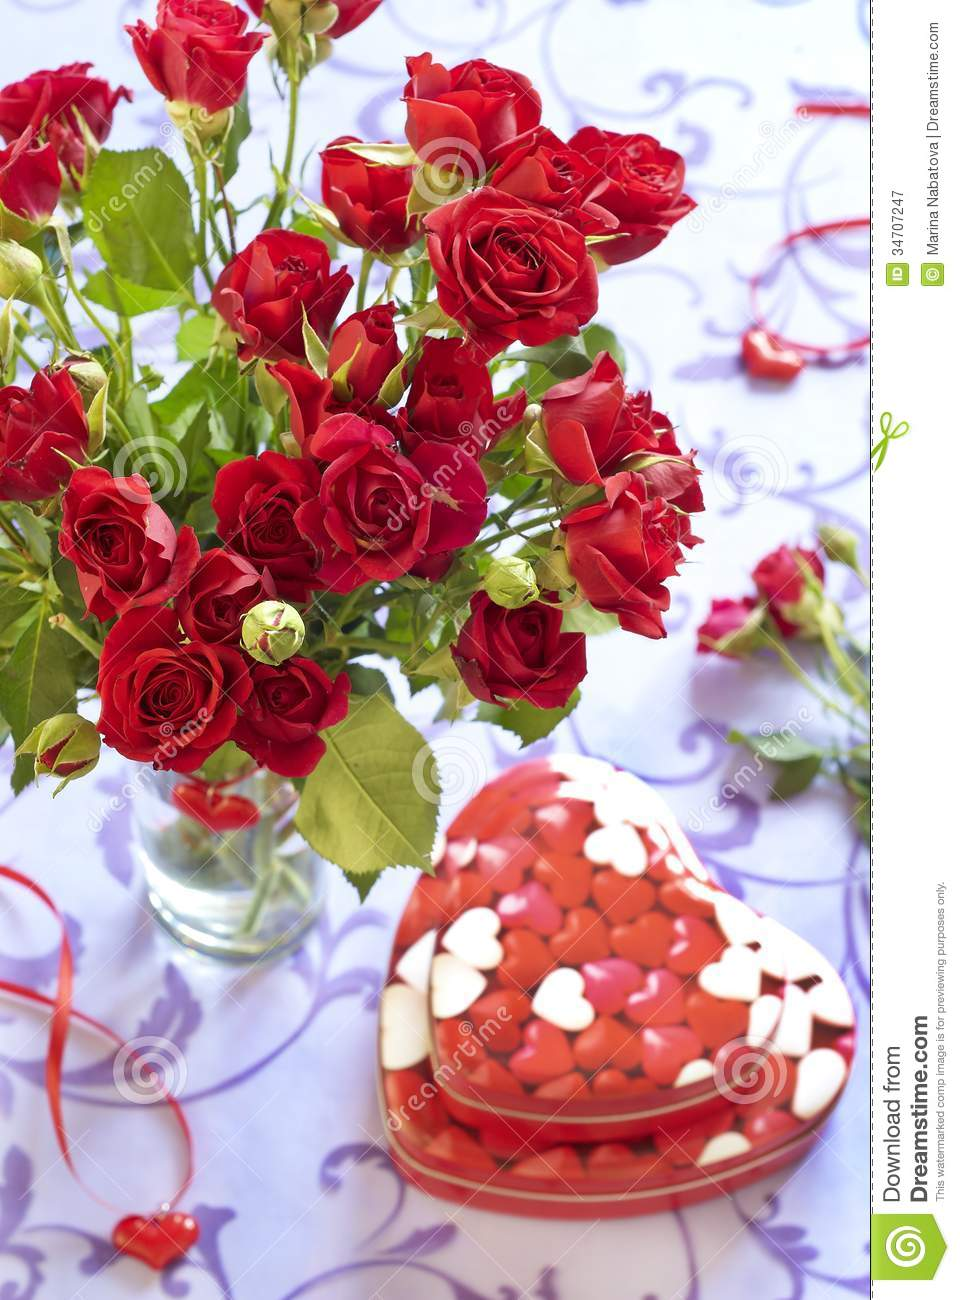 Roses And Gifts In Valentine Day Royalty Free Stock